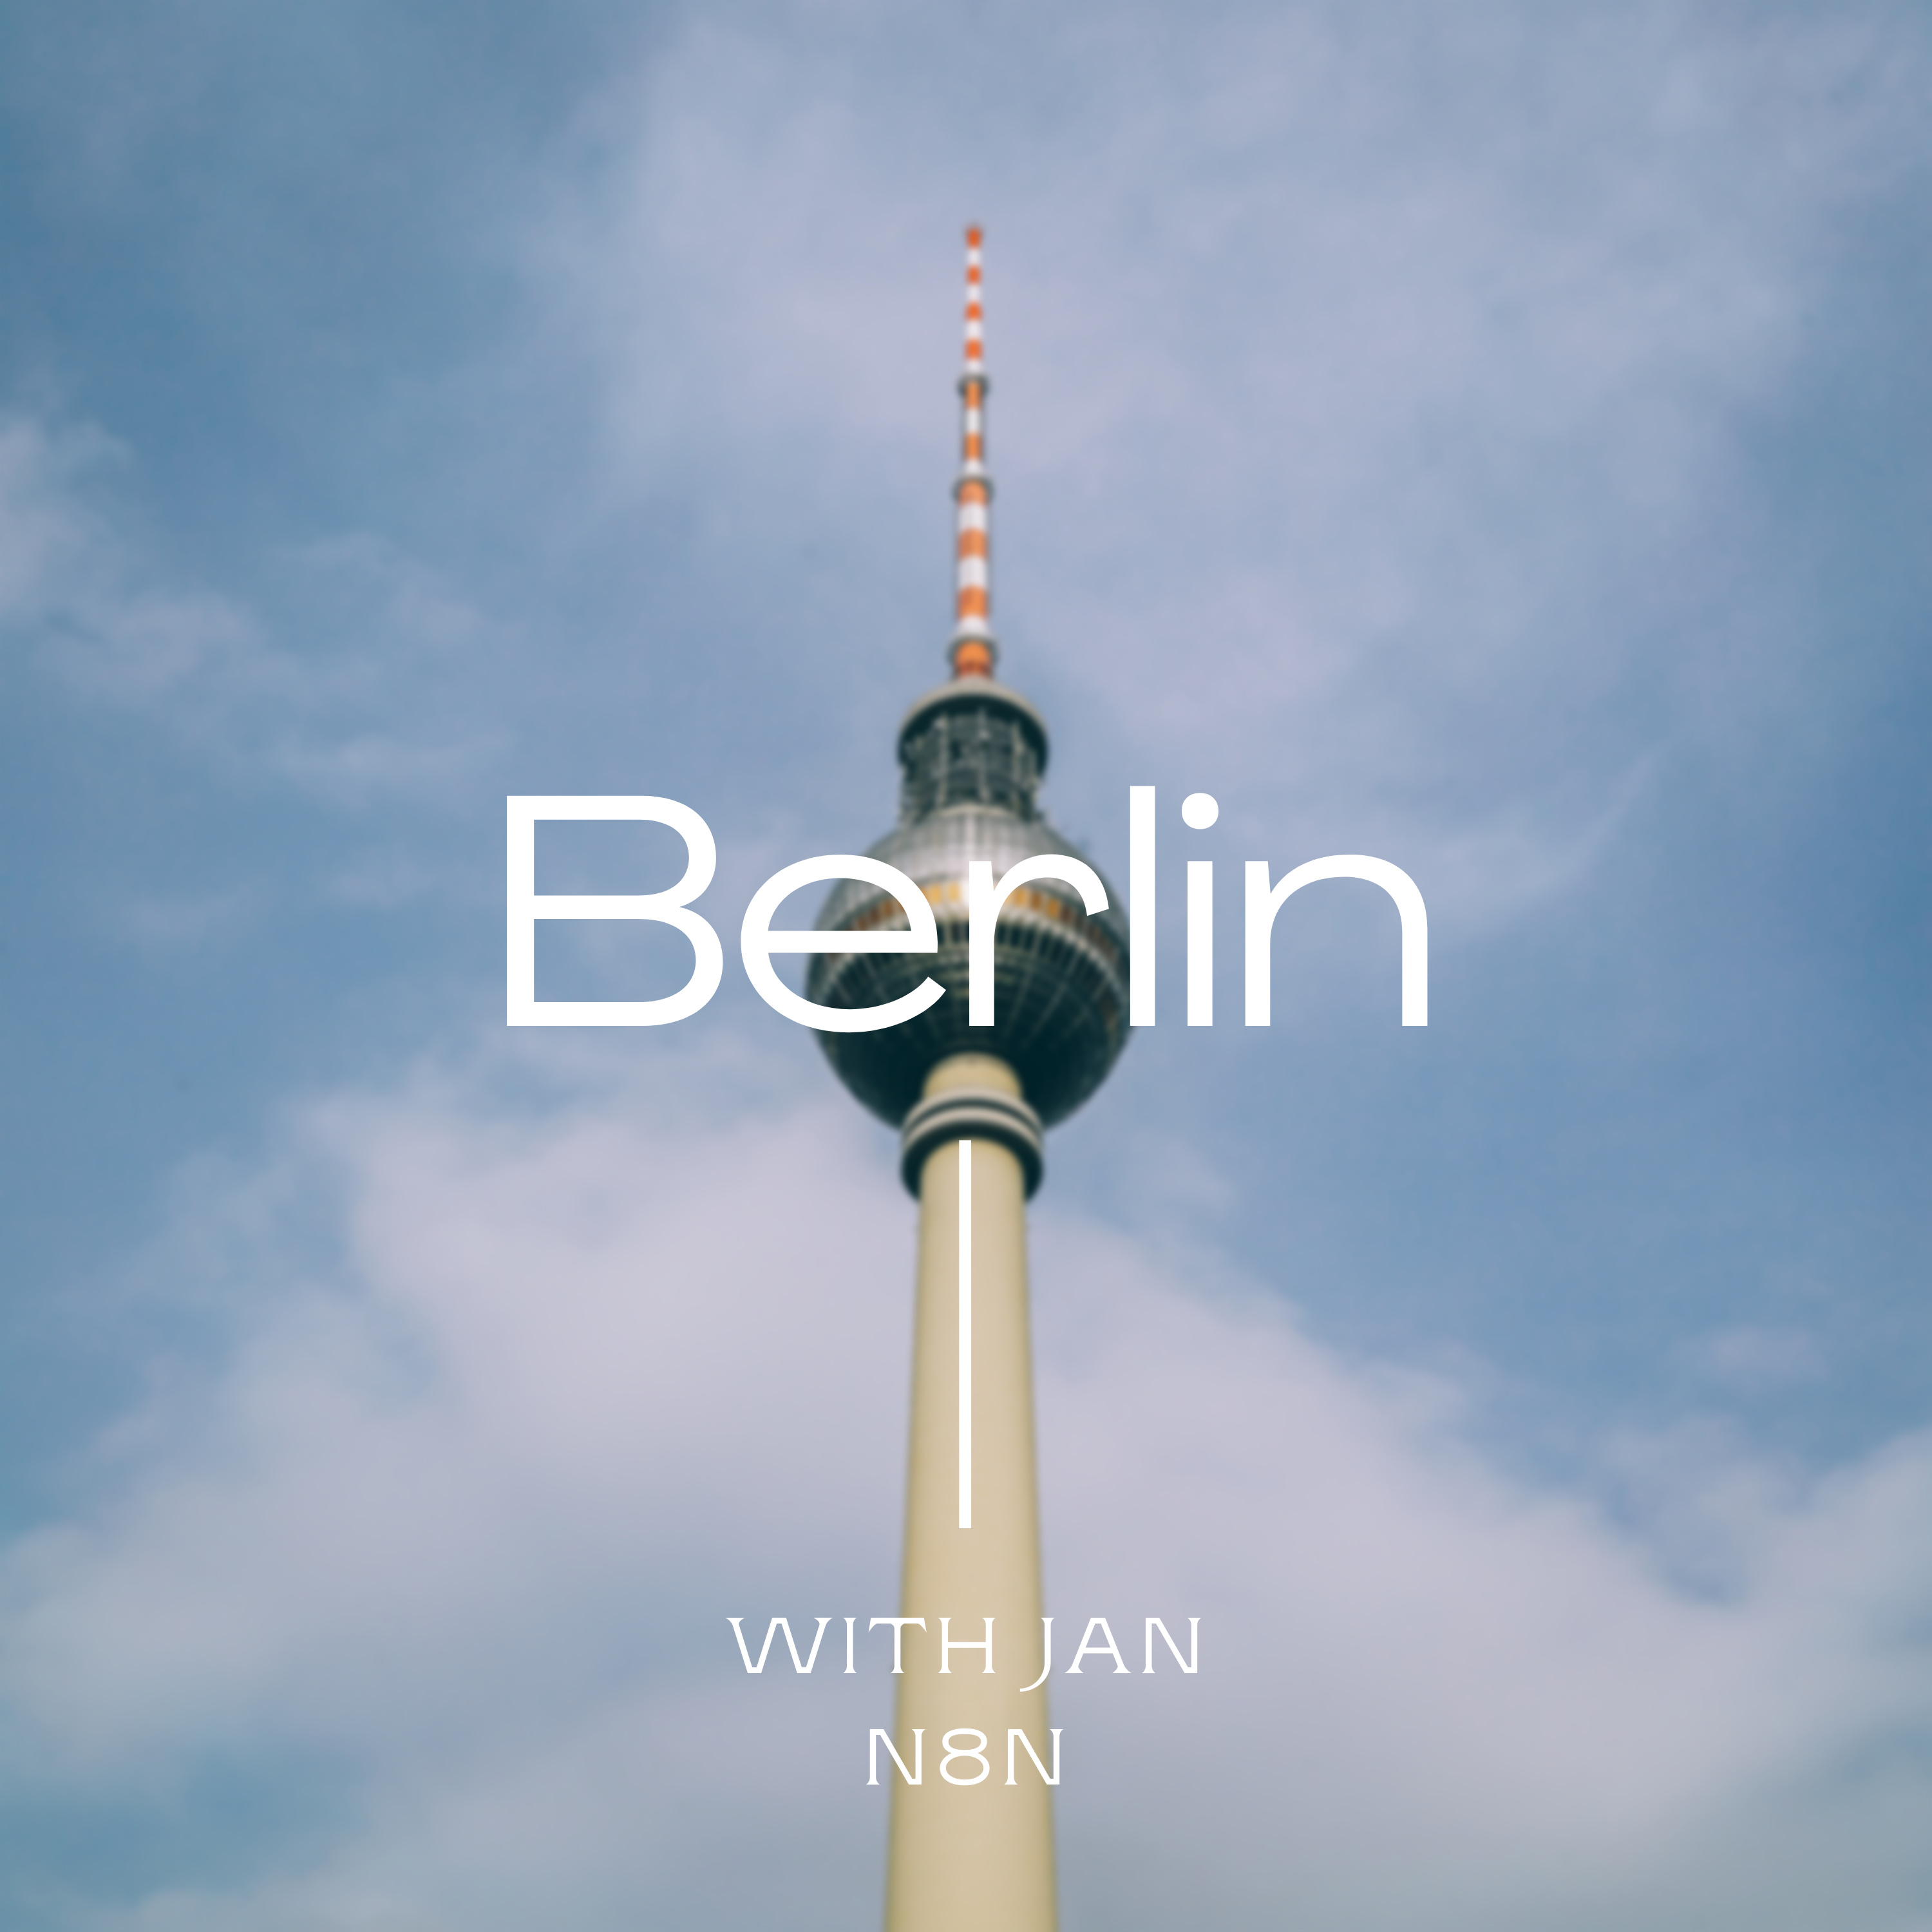 #5: In Berlin, Jan tells me the story of the automation tool n8n that he created